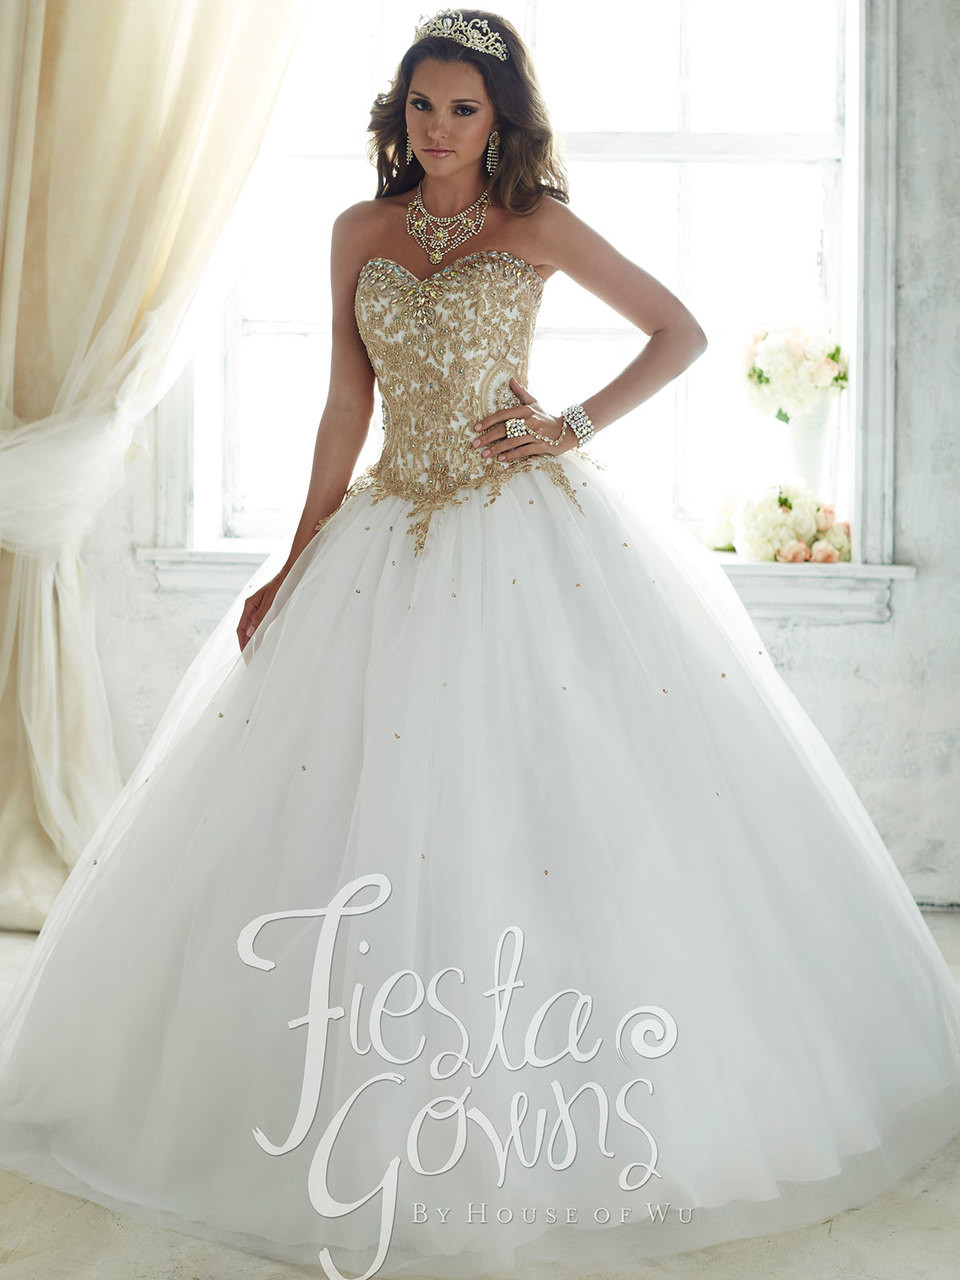 f4c41101430 Gold embroidery lace and white quinceanera dress with plain tulle skirt by  fiesta gowns 56286